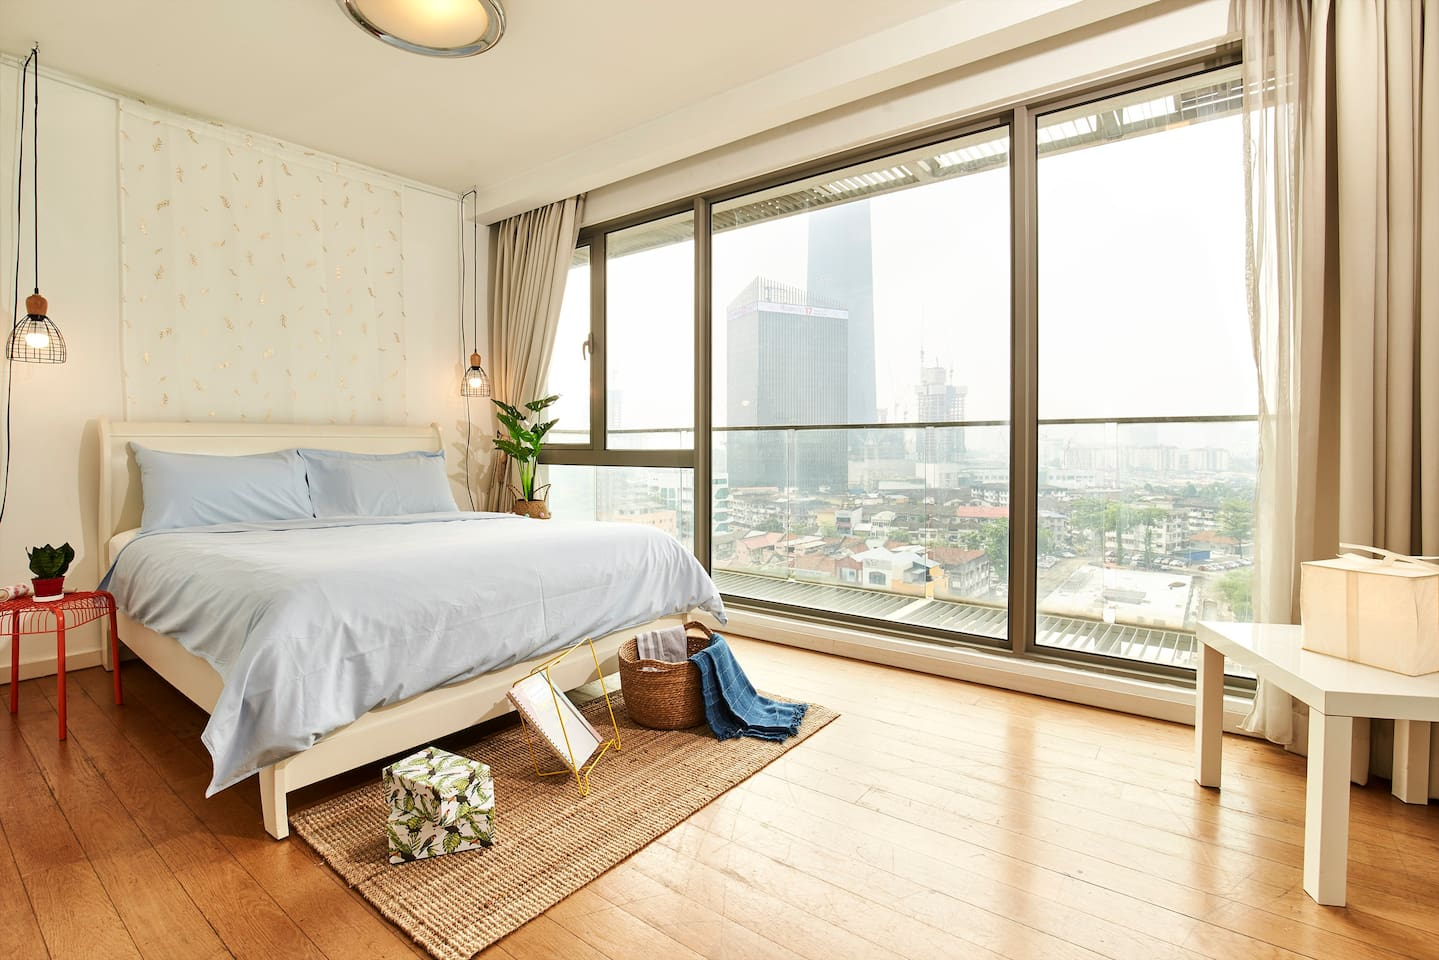 Bedroom with an amazing view of the KL iconic newly built Exchange-106 tower